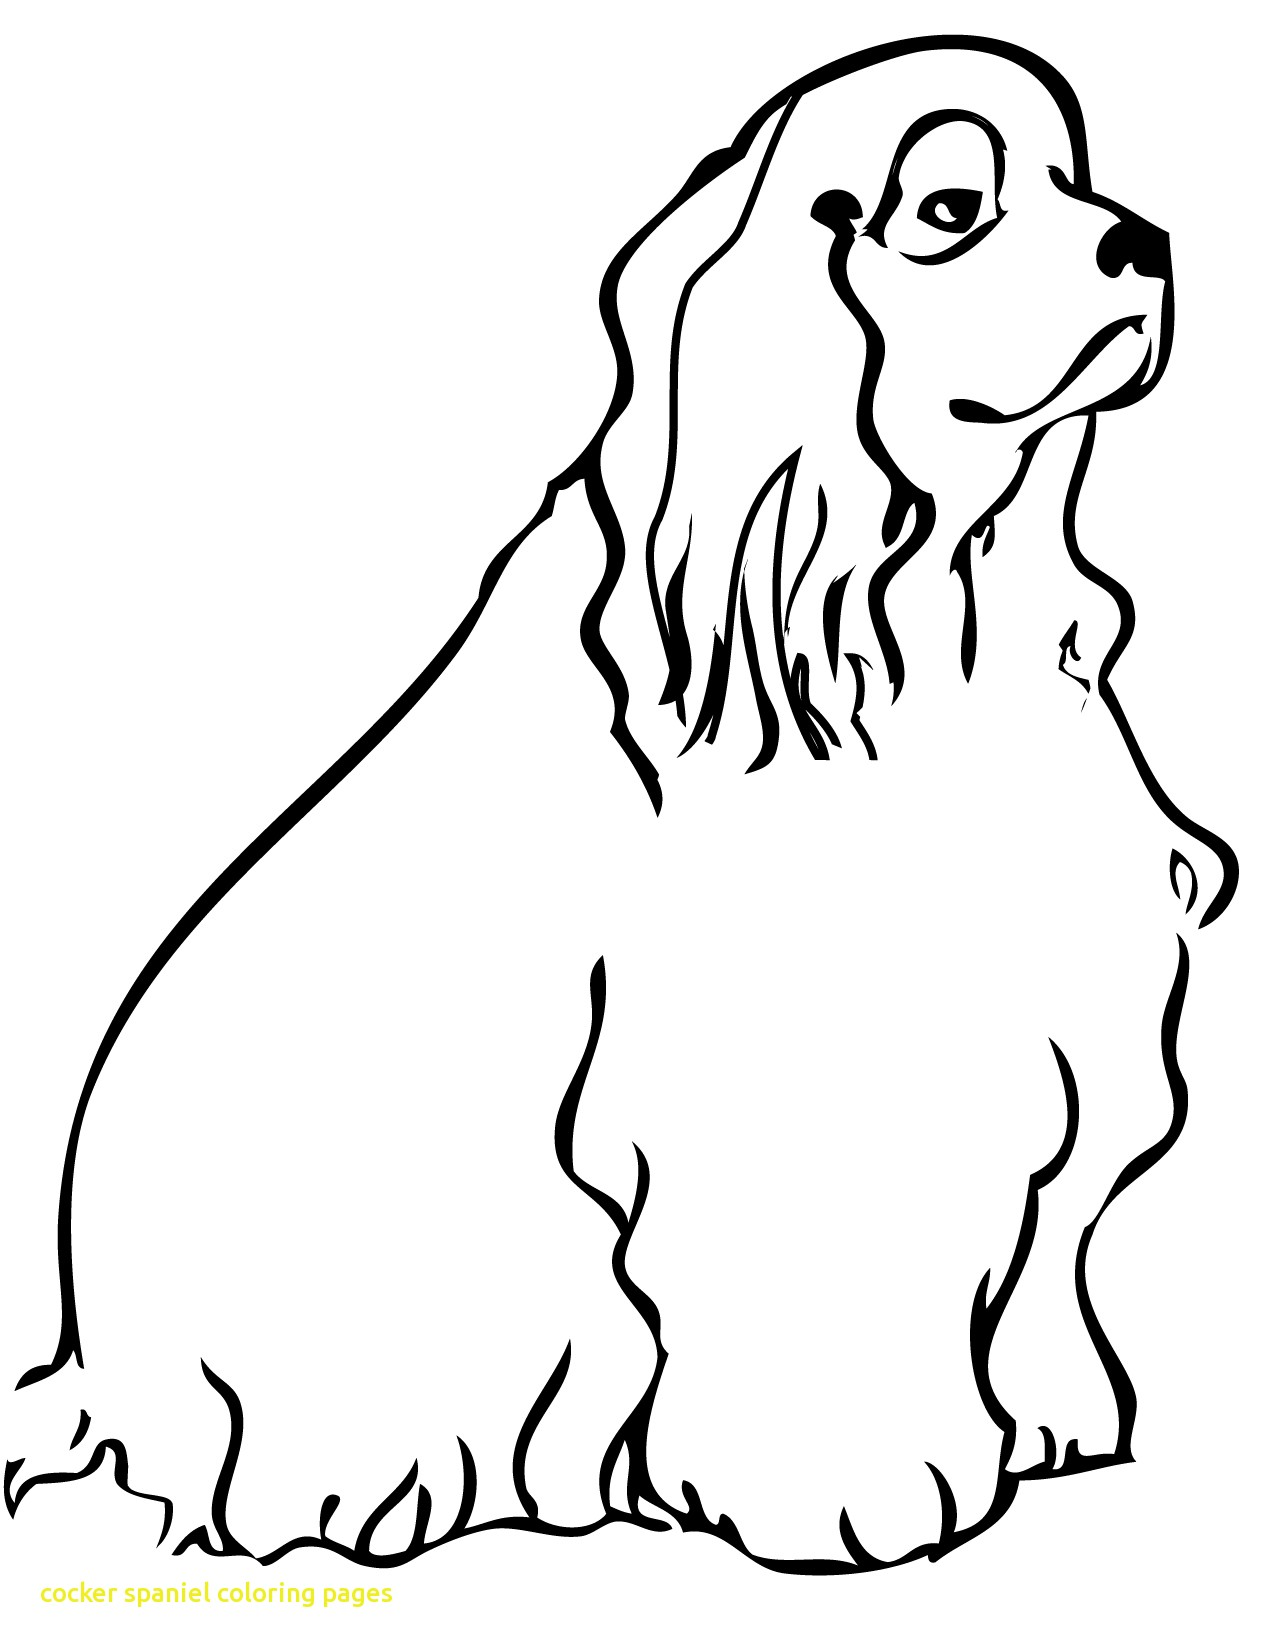 1275x1650 Cocker Spaniel Coloring Pages With Stunning Cocker Spaniel